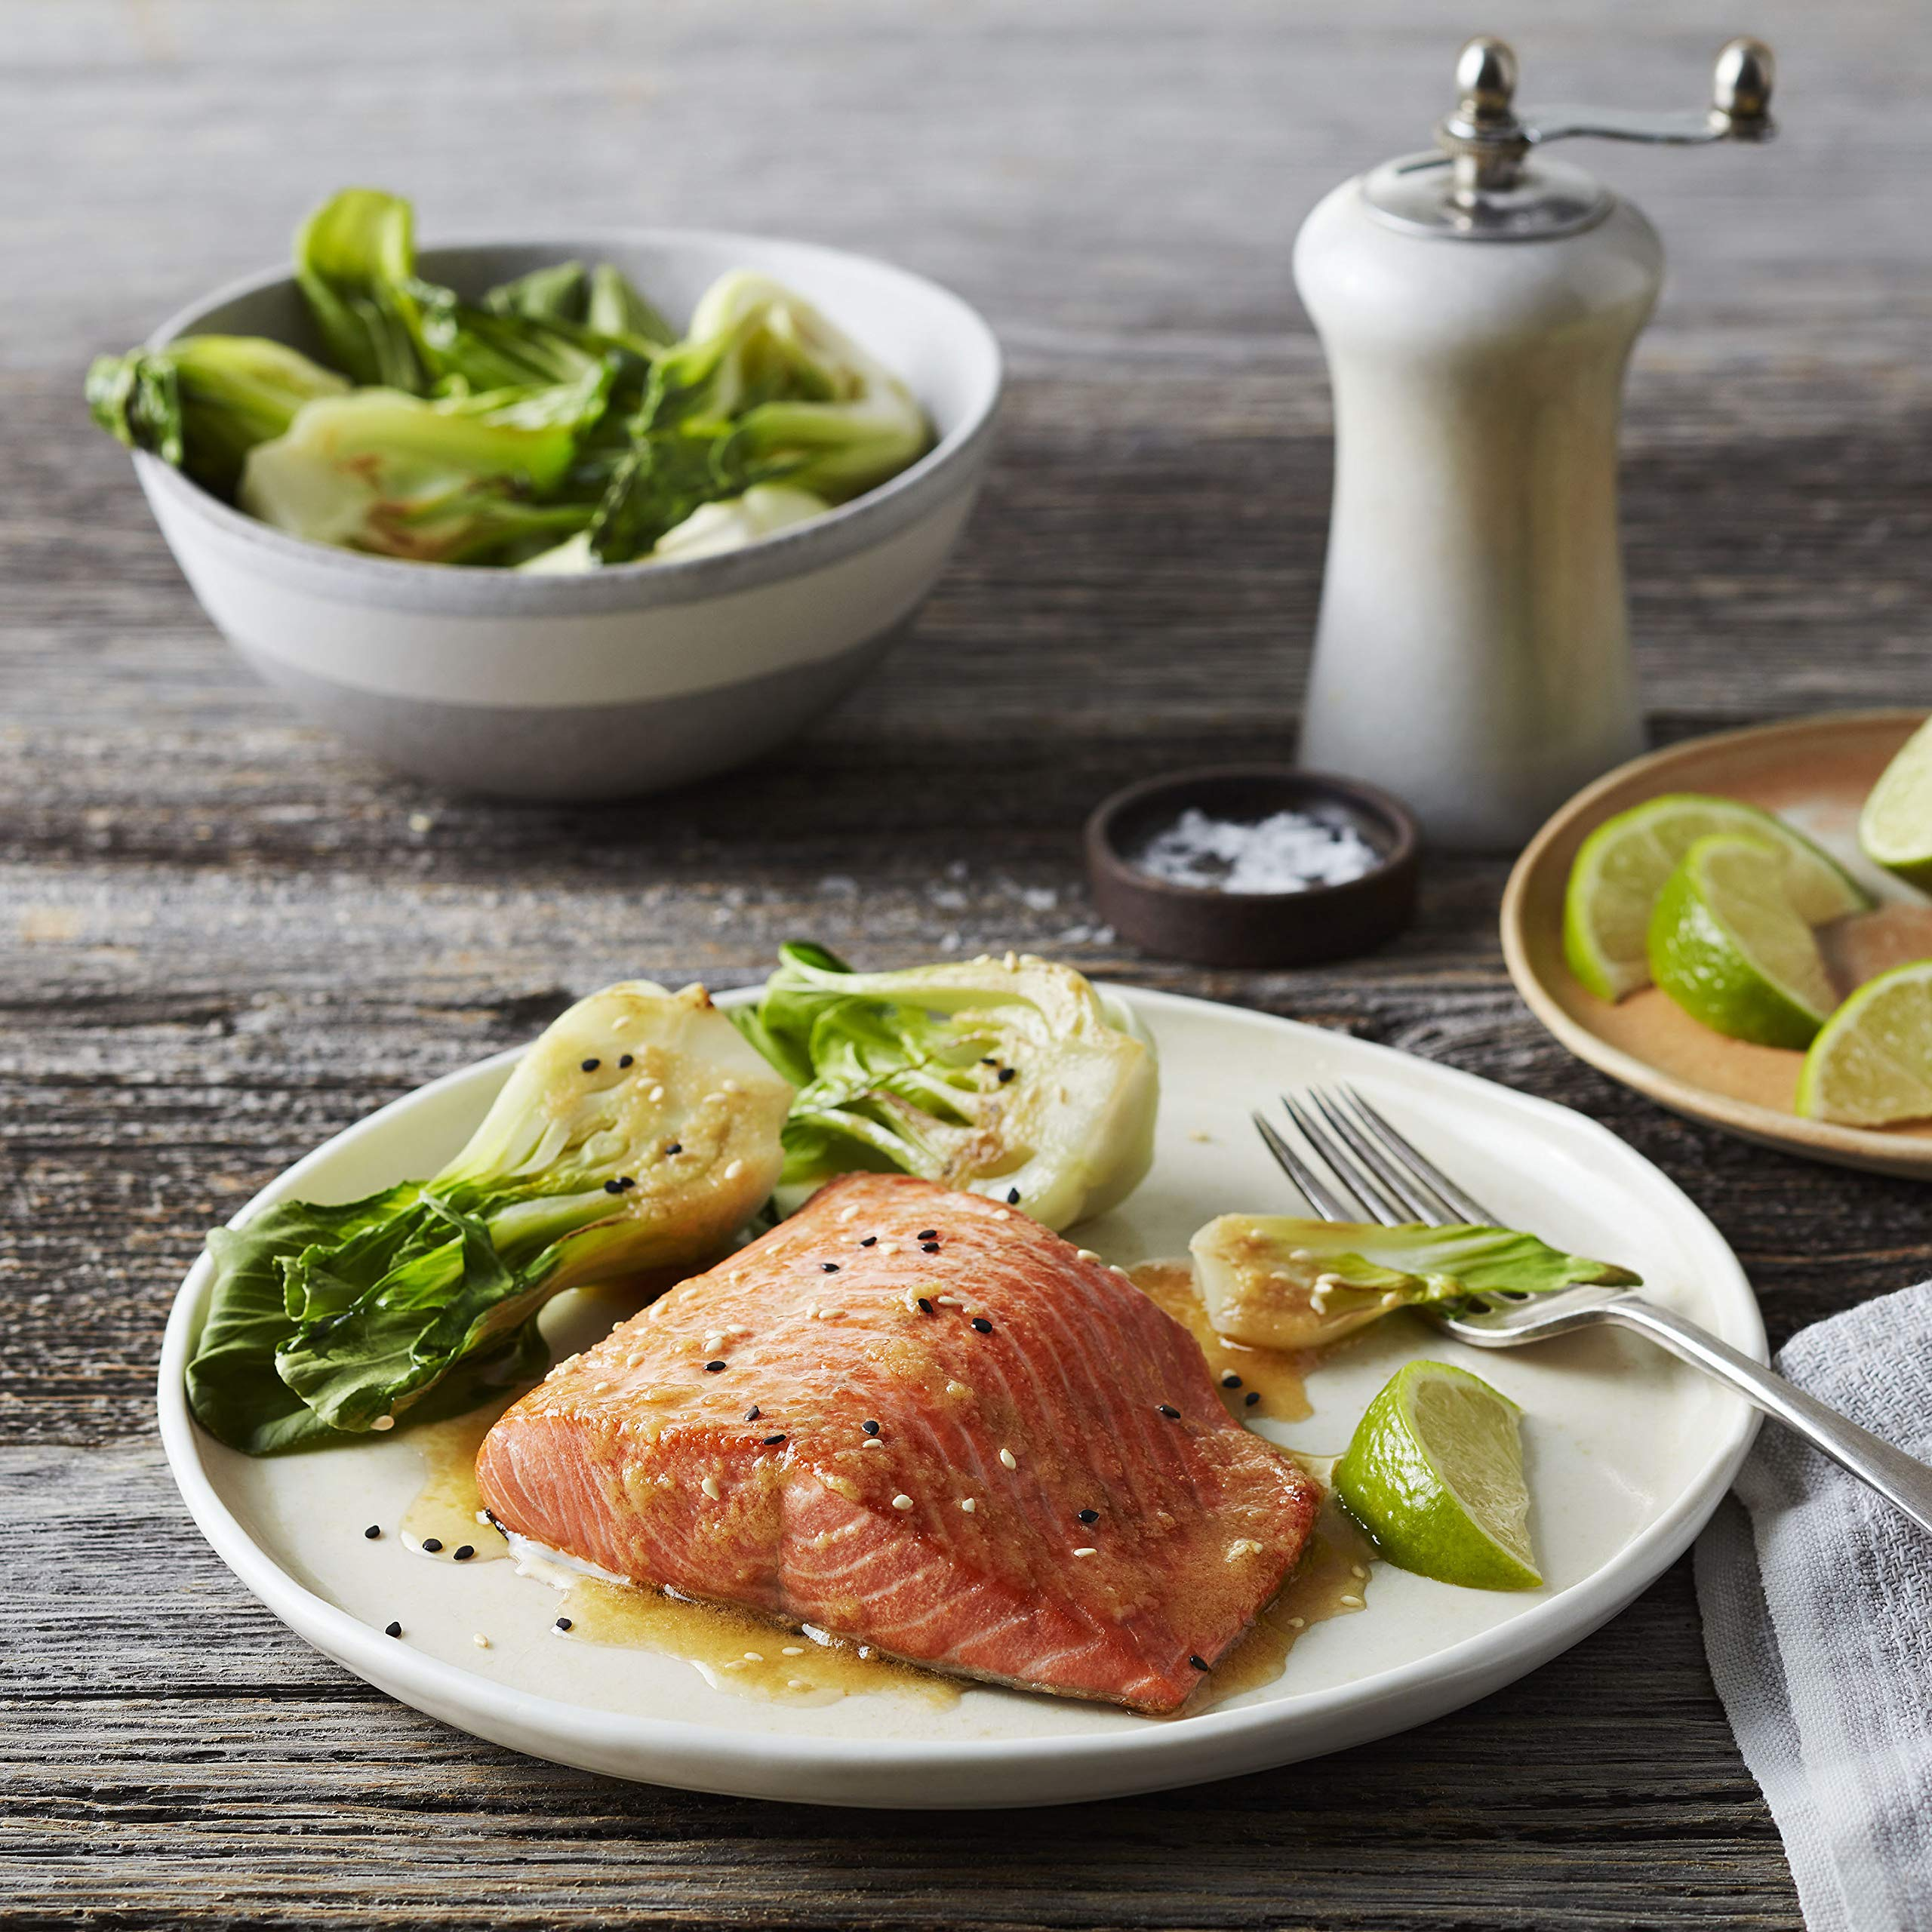 Martha Stewart for True North Seafood: Simple and Easy Sockeye Salmon with Miso Butter and Atlantic Salmon with Lemon Herb Butter - (Pack of 4) 11 oz. Trays by True North Seafood Company (Image #3)